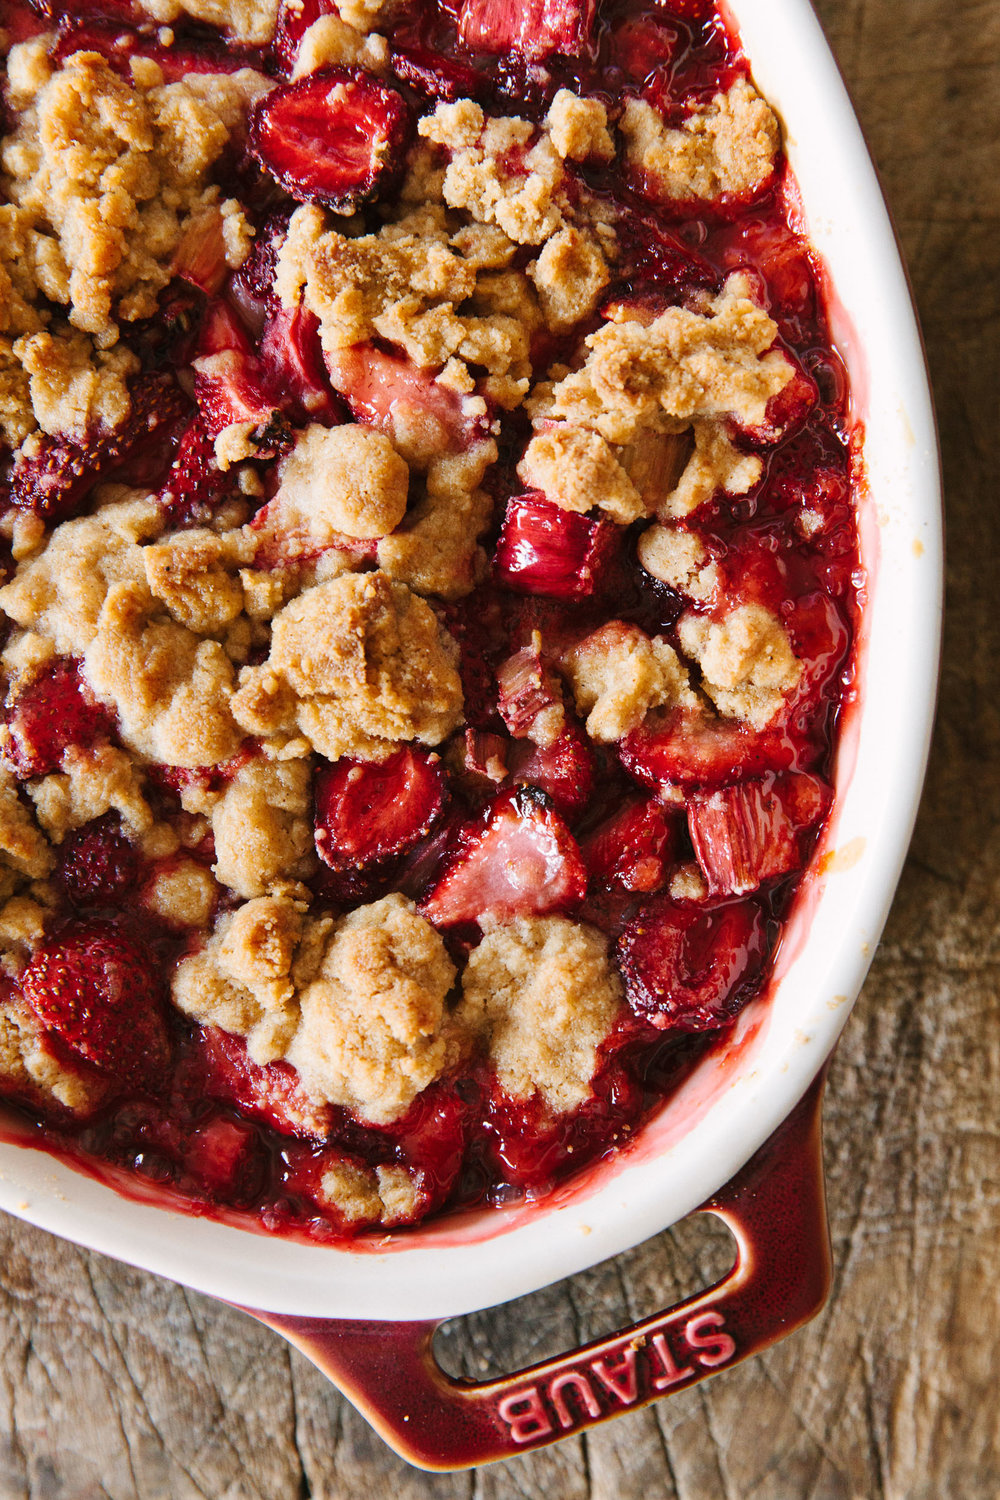 food-strawberry-rhubarb-crumble-christine-han-101.jpg